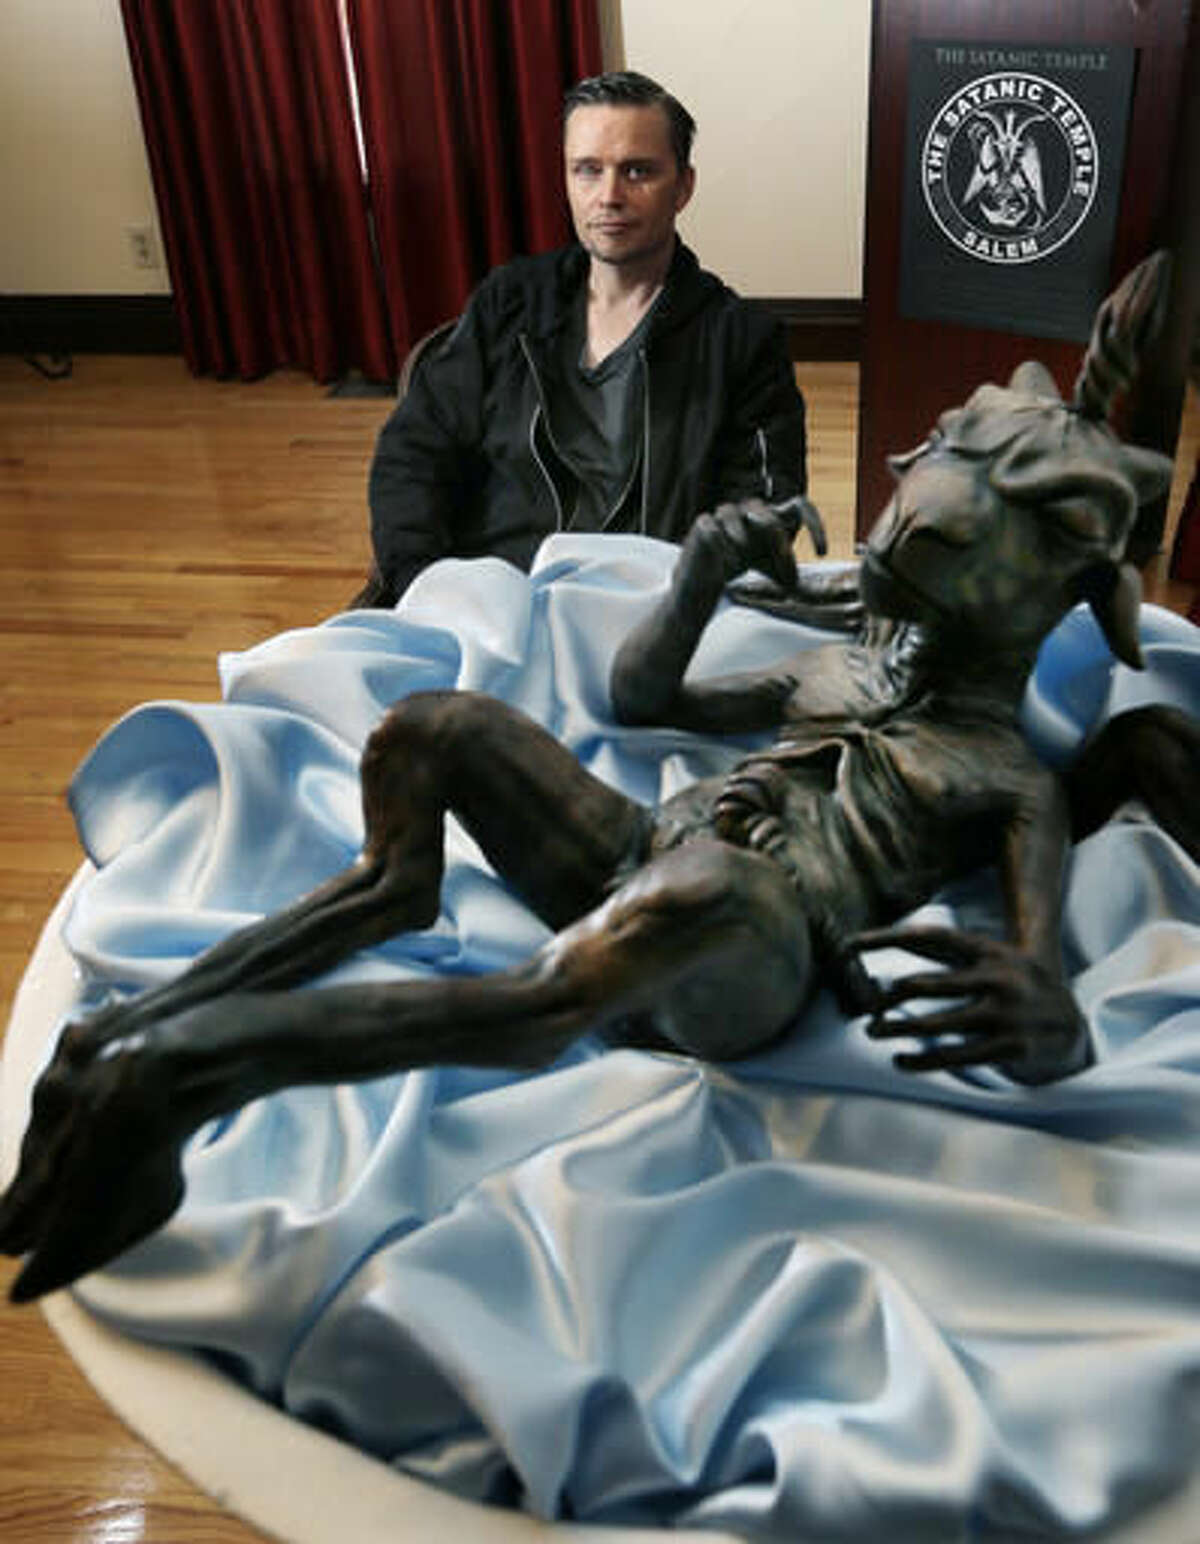 In this Oct. 24, 2016 photo, Lucien Greaves sits near a statue of a baby Baphomet inside the recently opened international headquarters of the Satanic Temple in Salem, Mass. The Satanic Temple is waging religious battles along a variety of fronts nationwide, and its co-founder says it's just getting started. Greaves says the temple hopes to ensure Satanists